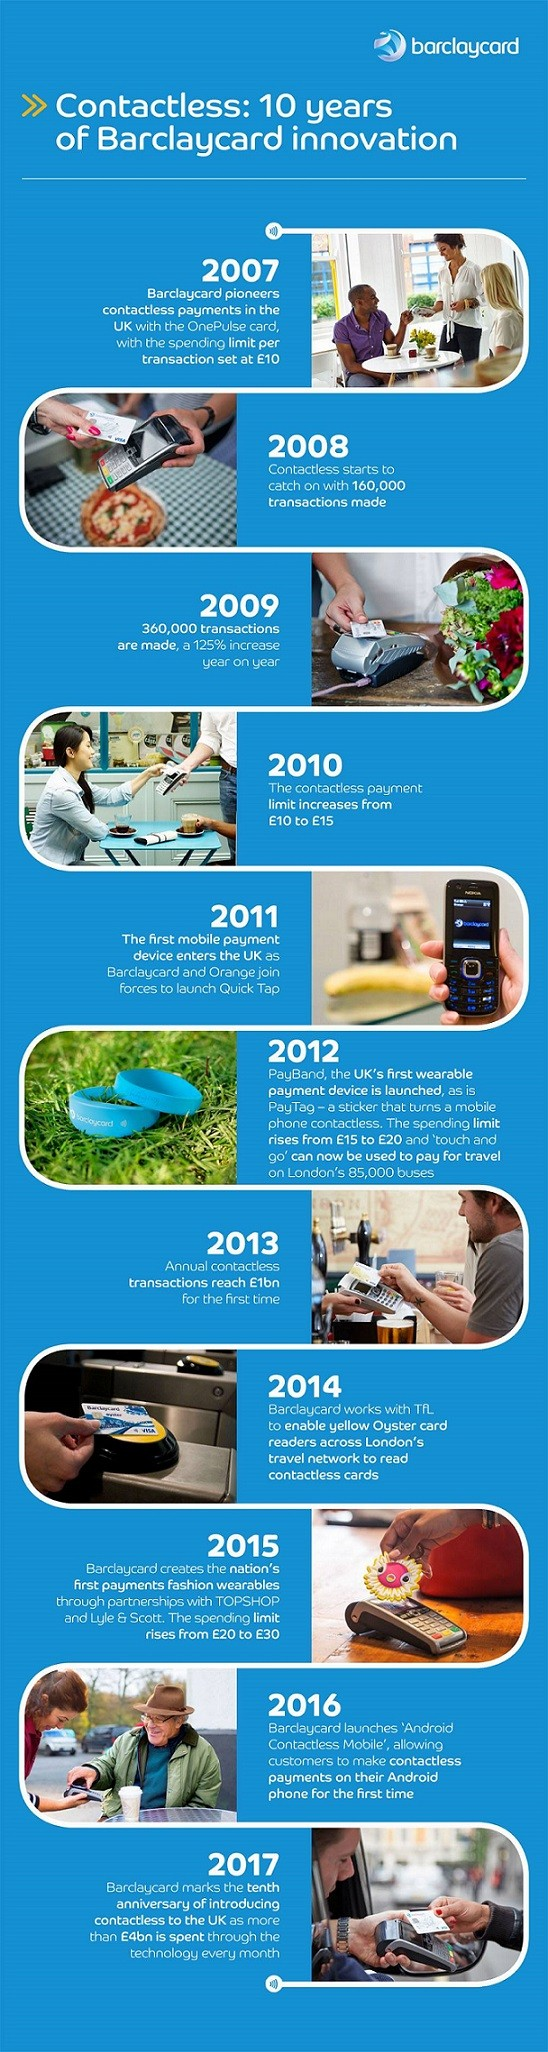 Barclaycard 10 years of contactless